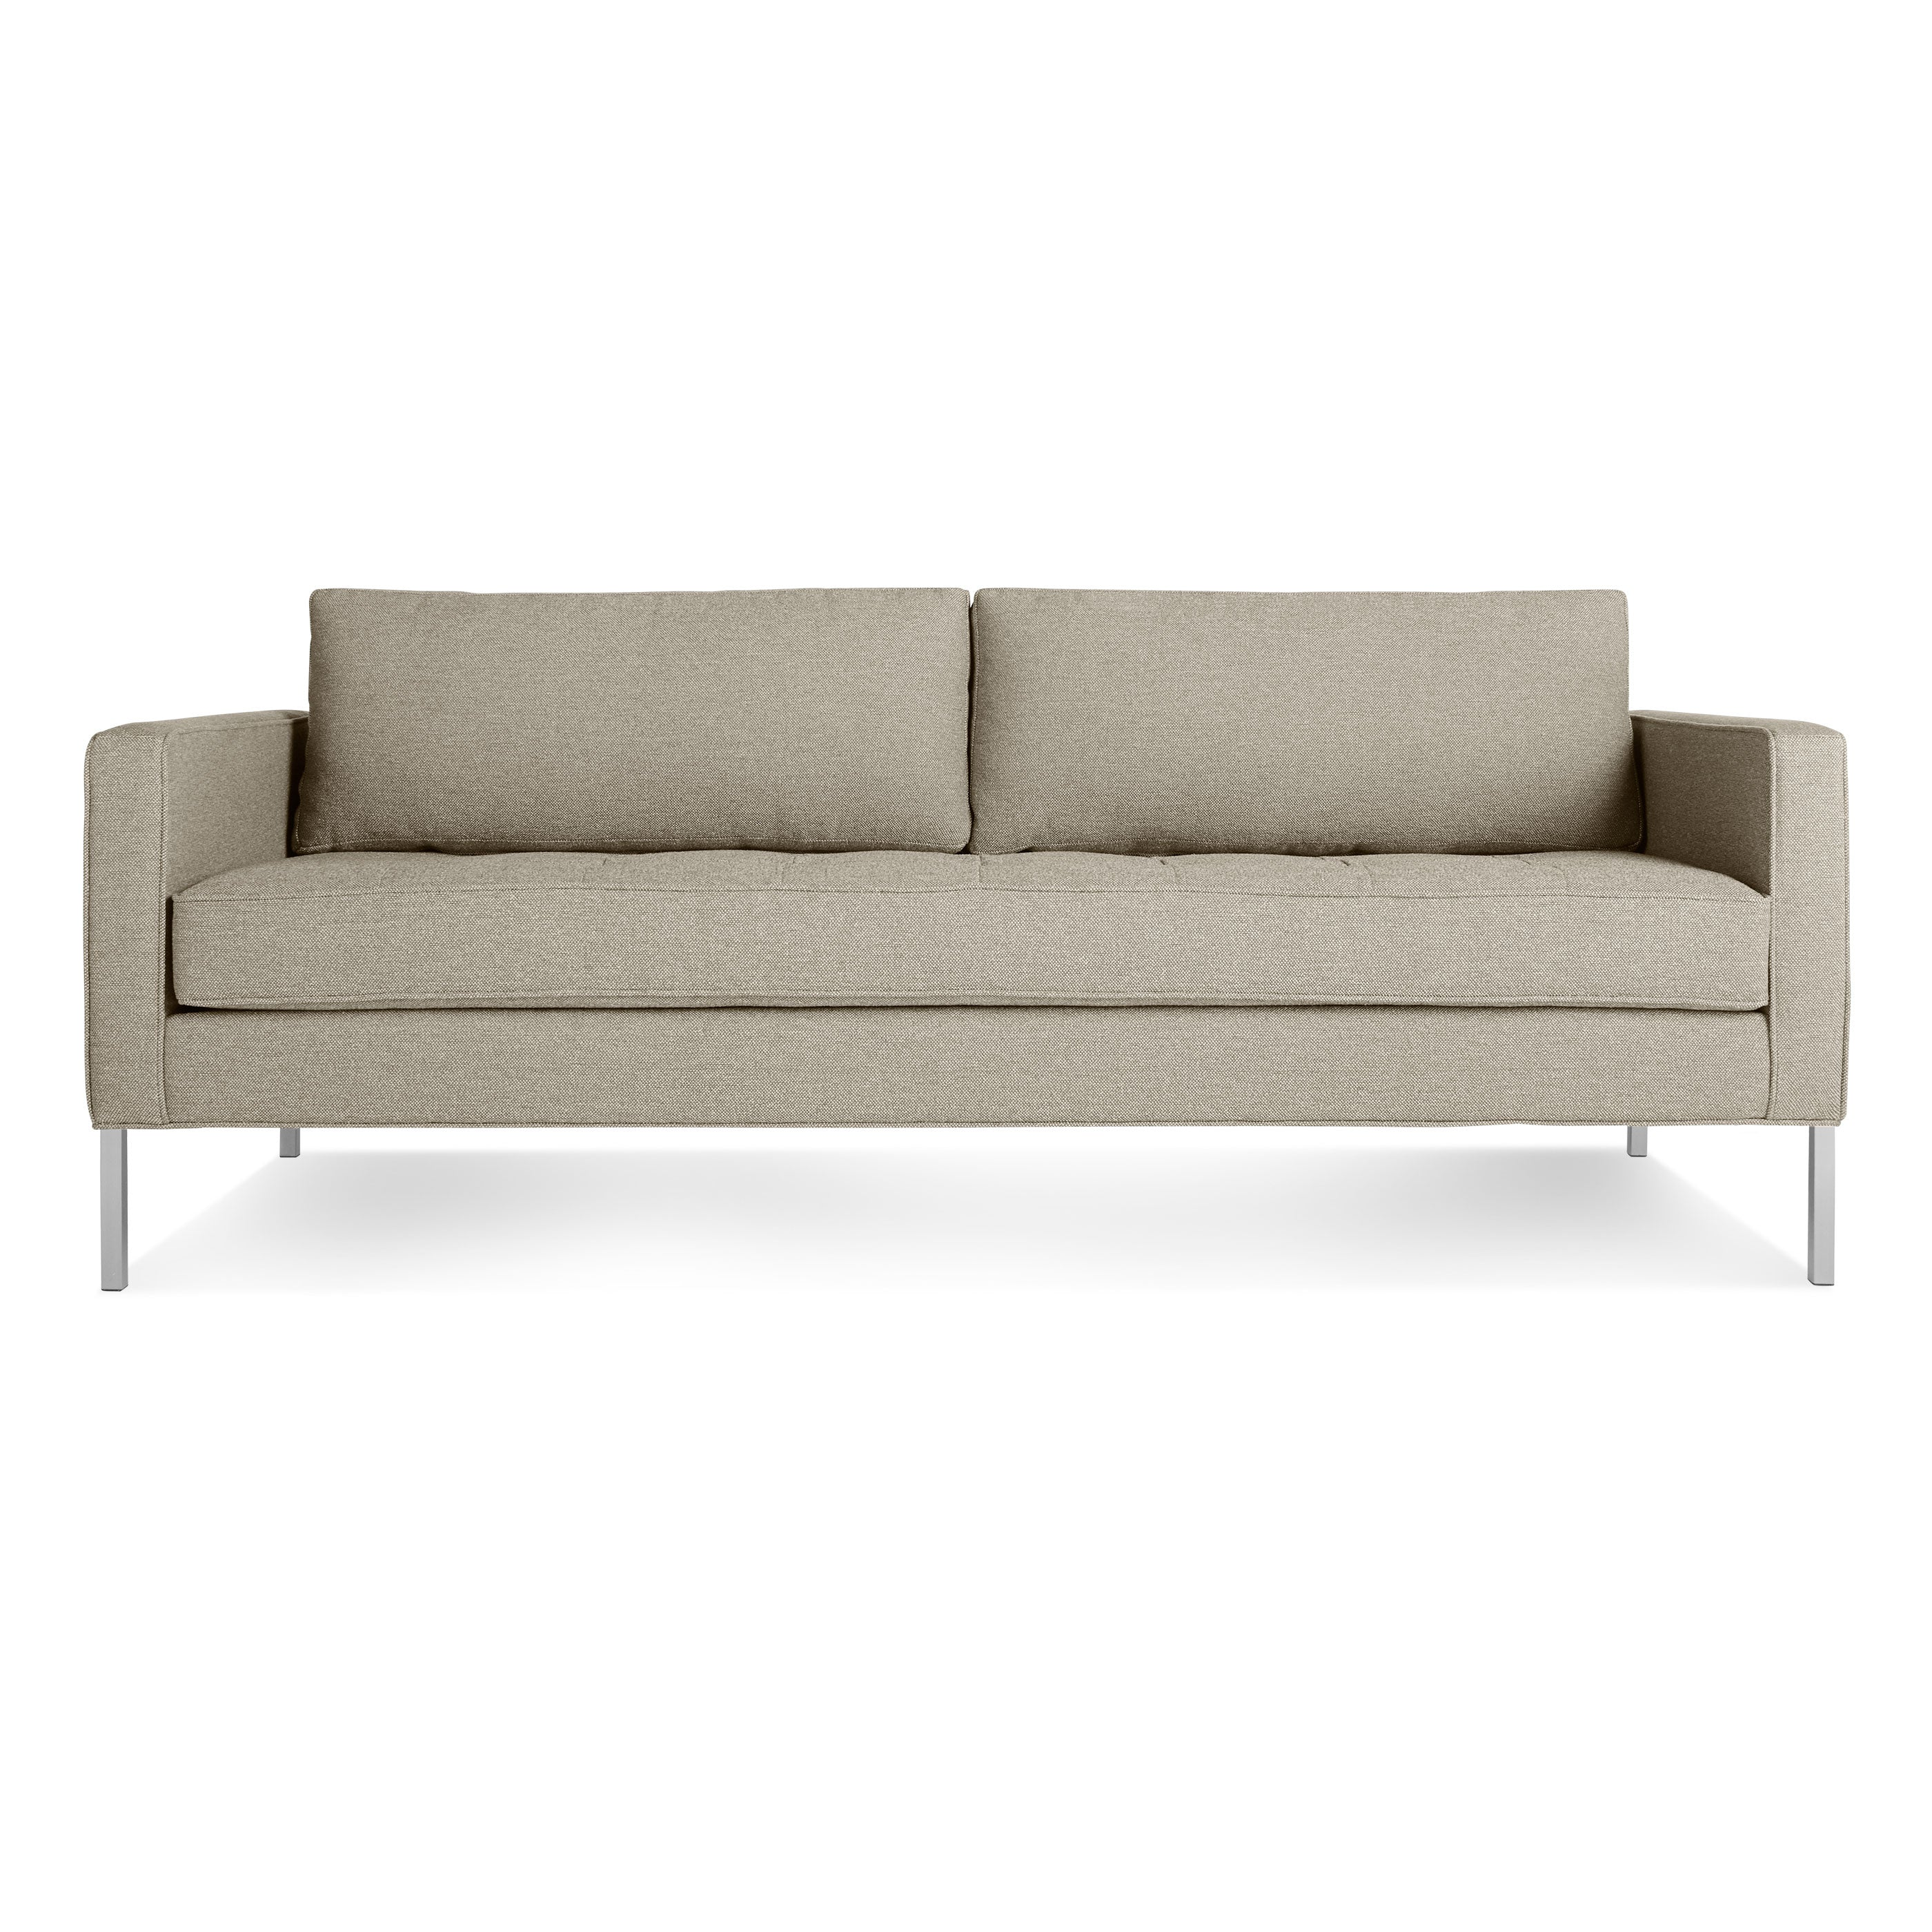 Paramount Medium Sofa